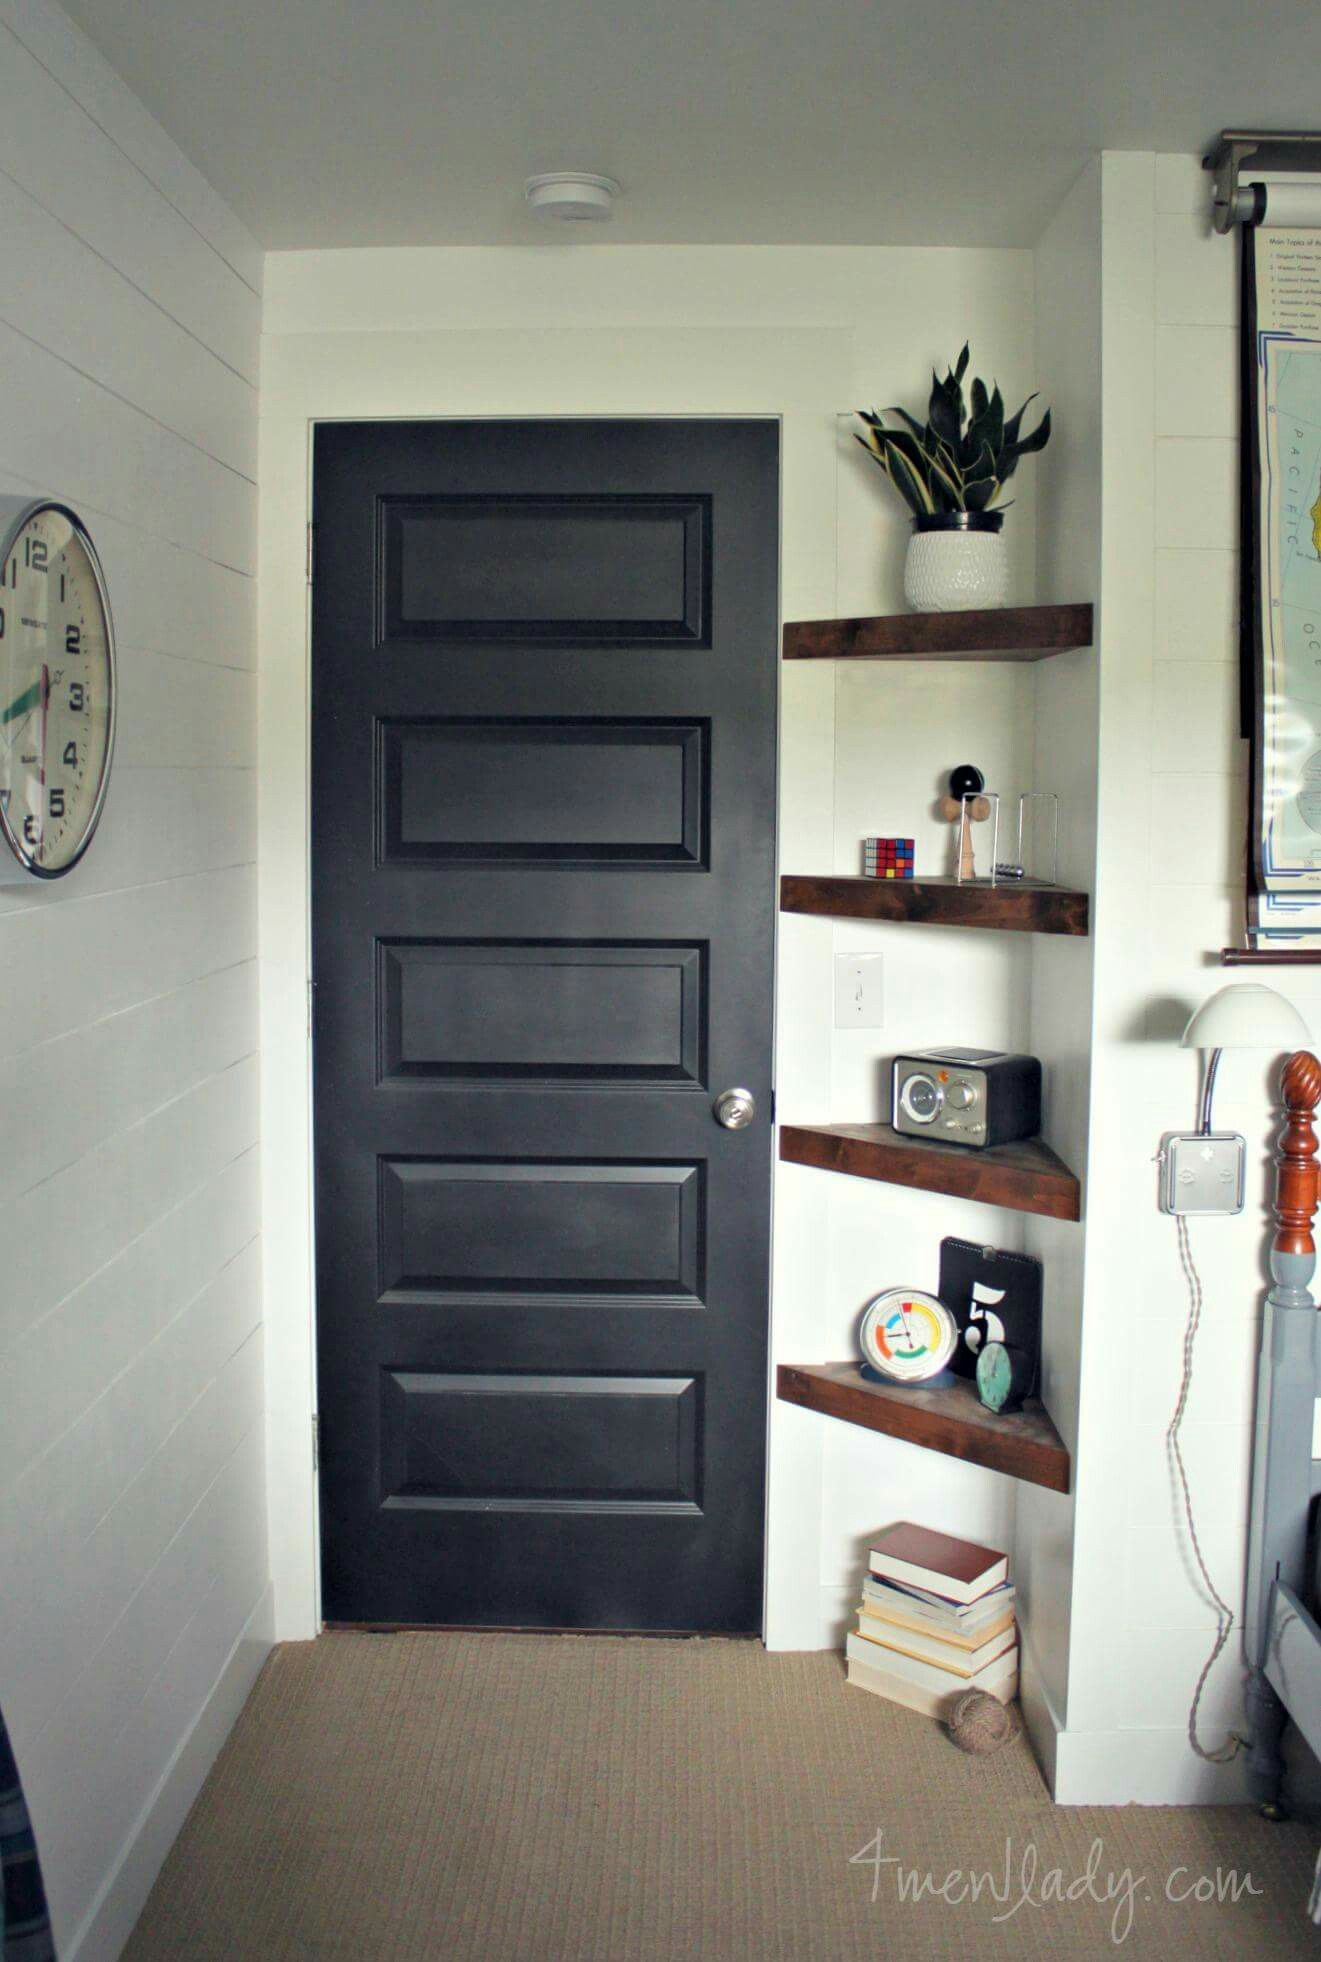 Decorating Small Apartments Apartment Storage House Bedroom